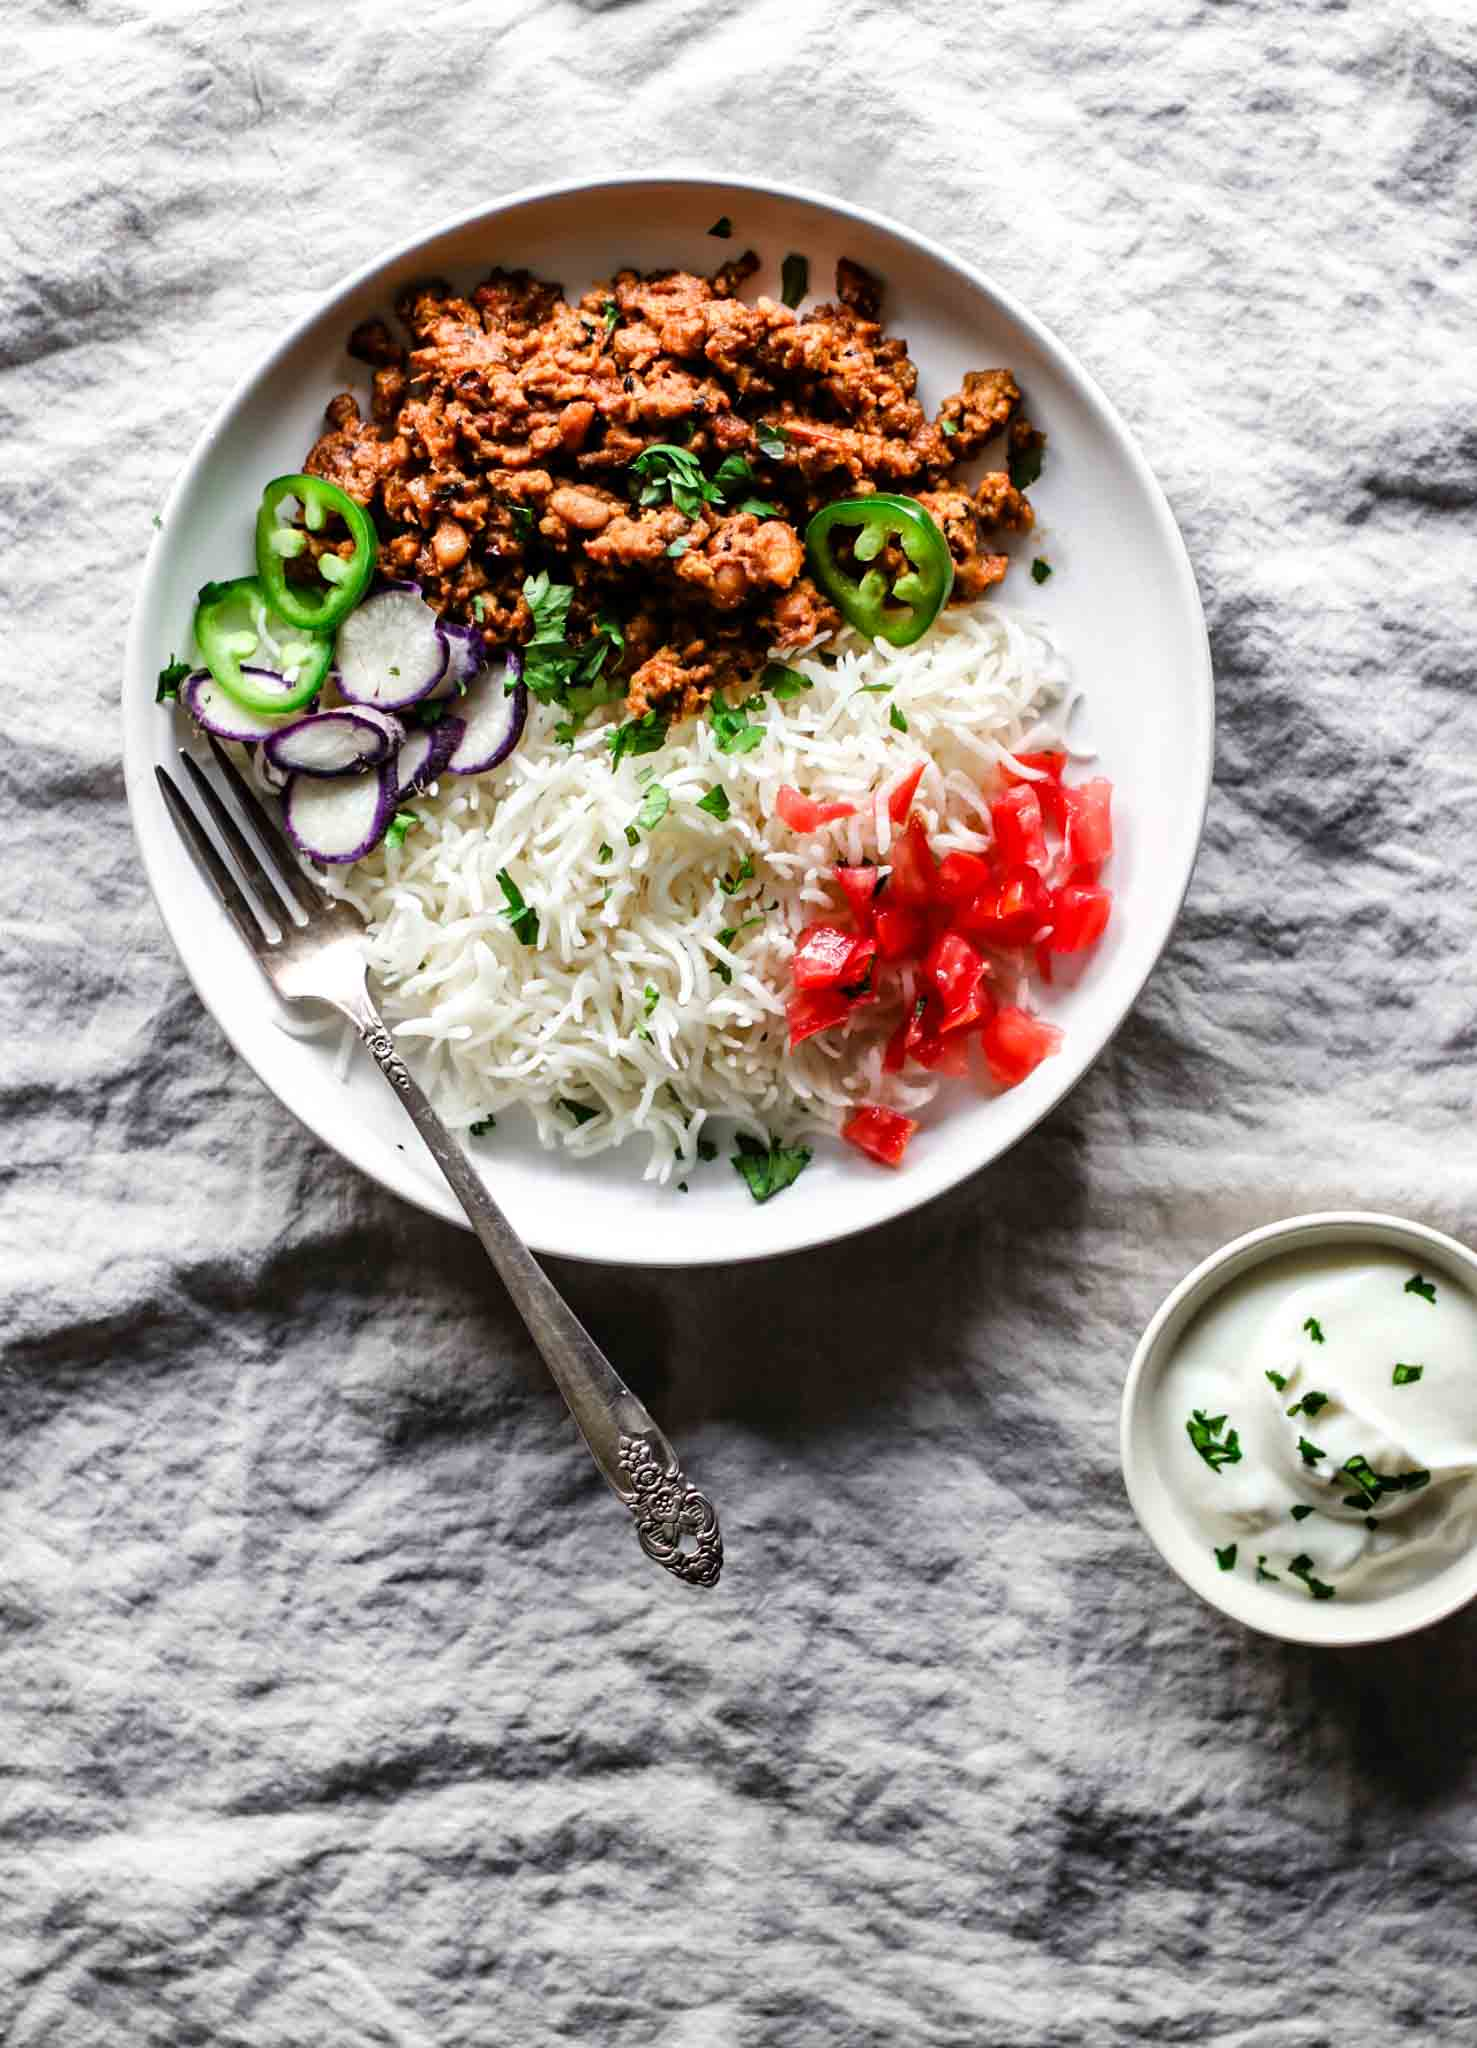 Keema Lobia on a white plate with a silver fork with rice, vegetables, and yogurt on the side